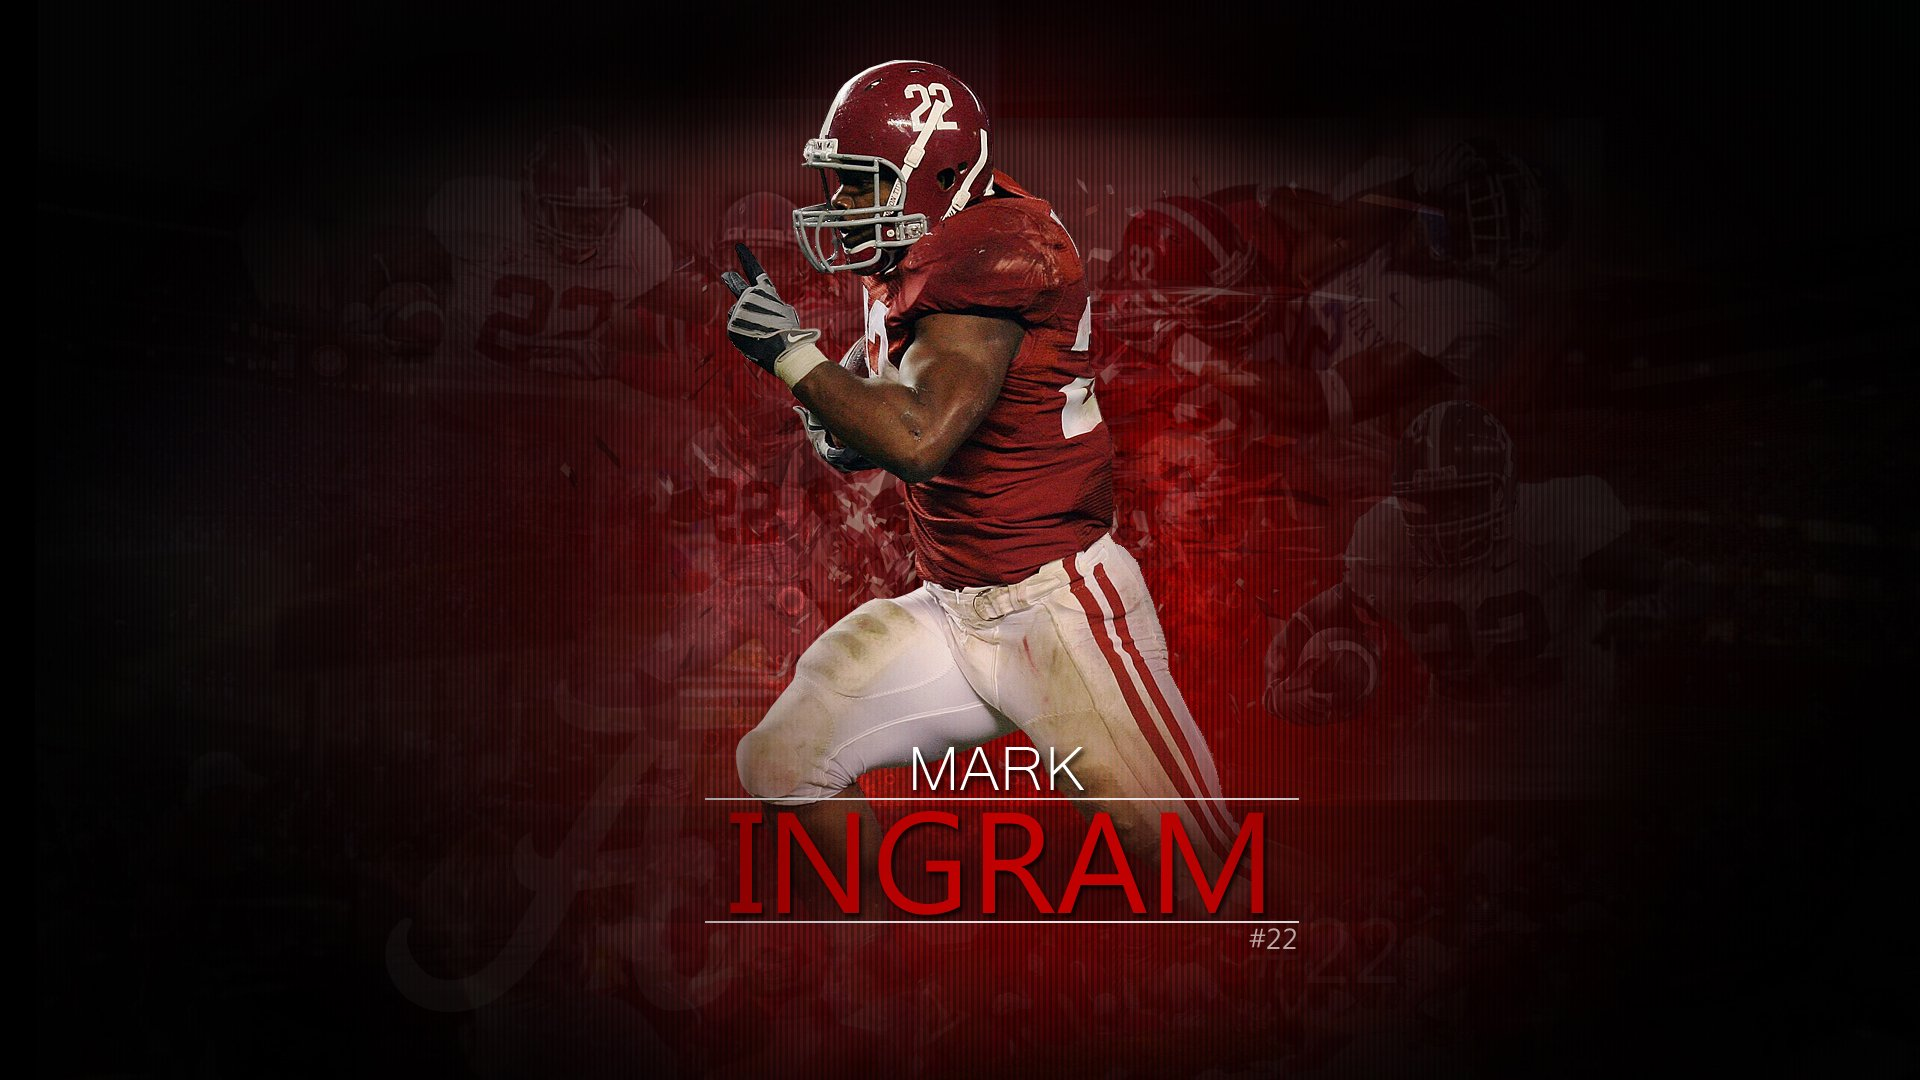 wallpapersdesktopfootballcrimsoningramalabamawallpaper 1920x1080